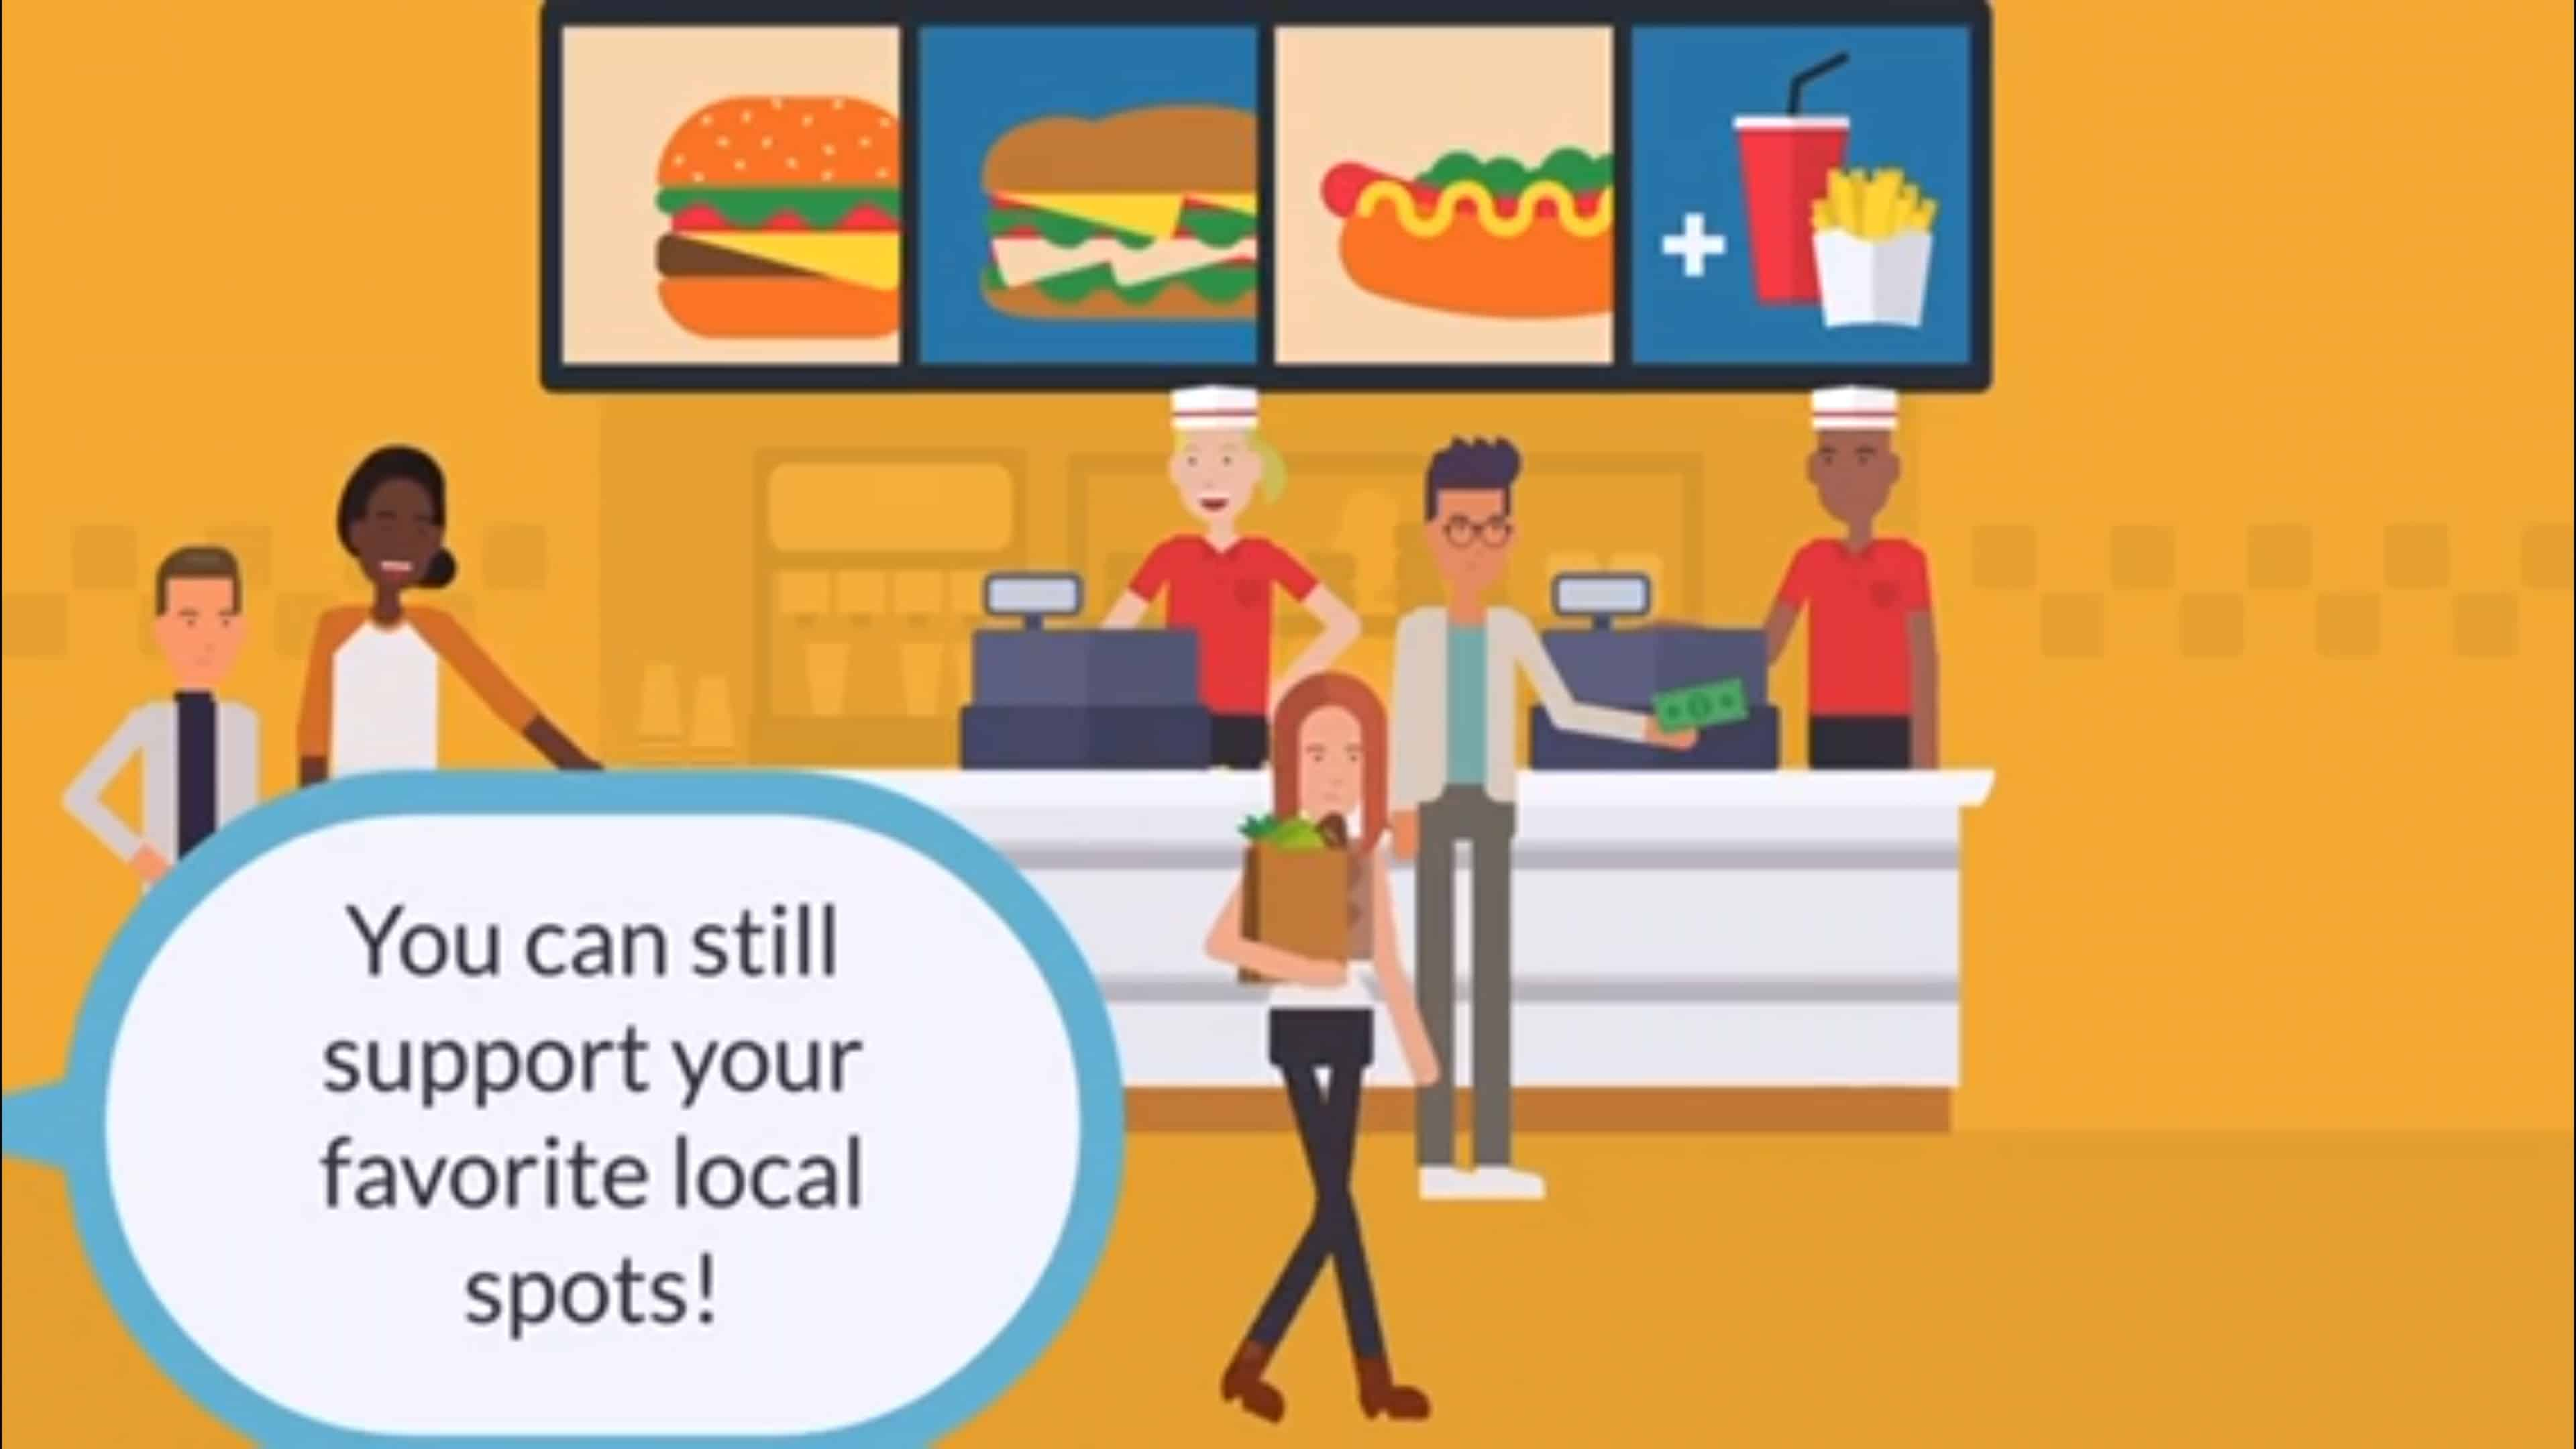 How to help local businesses